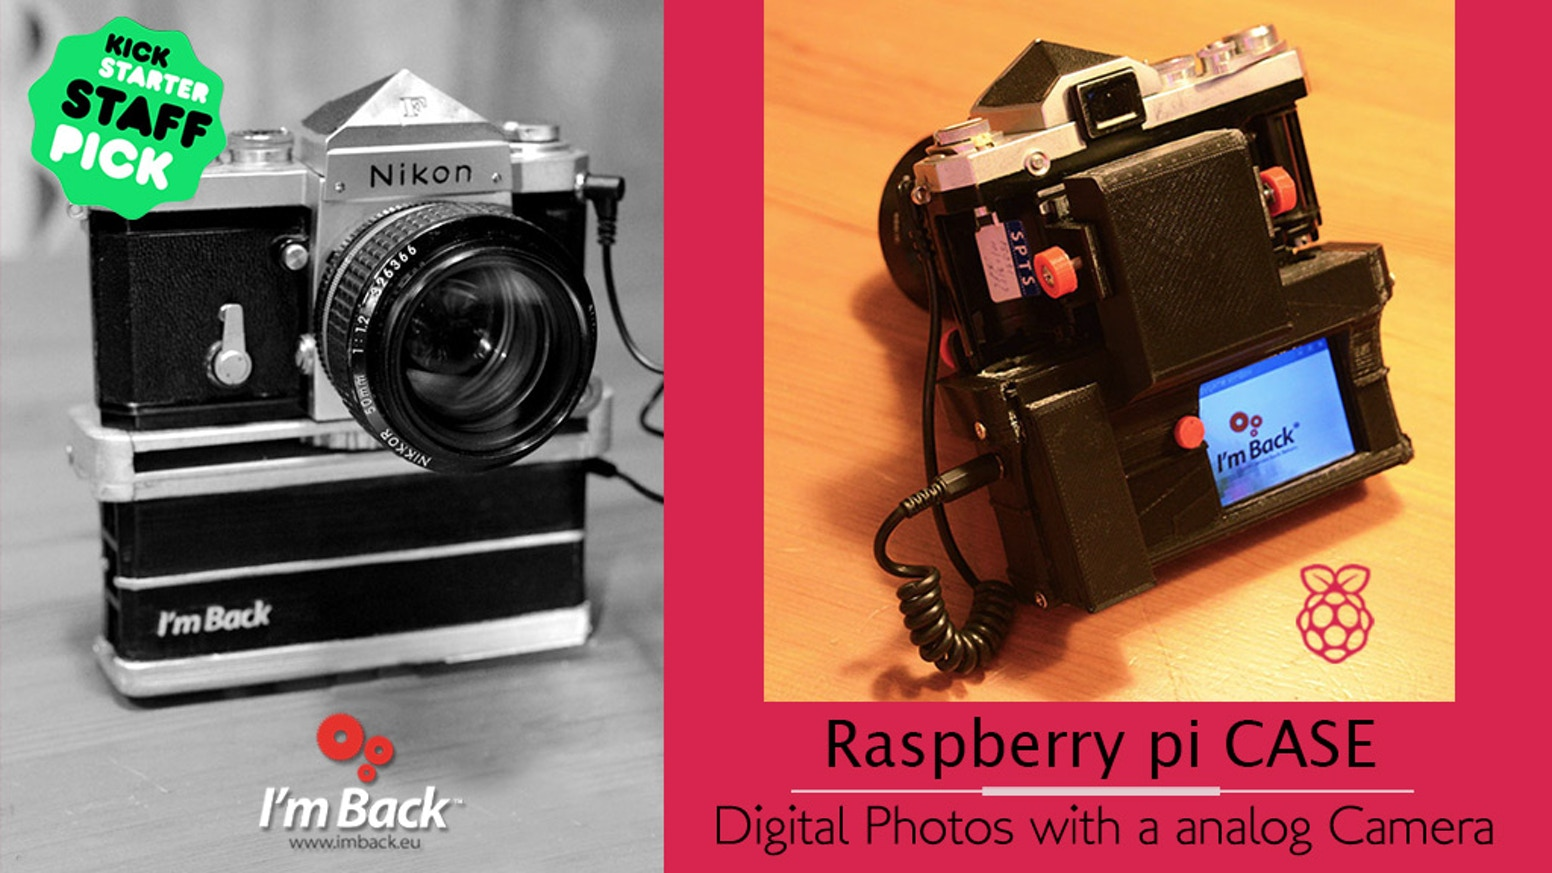 I'm Back™ protects your Raspberry Pi and gives you the possibility to take photos with many analog cameras SLR or rangefinder.